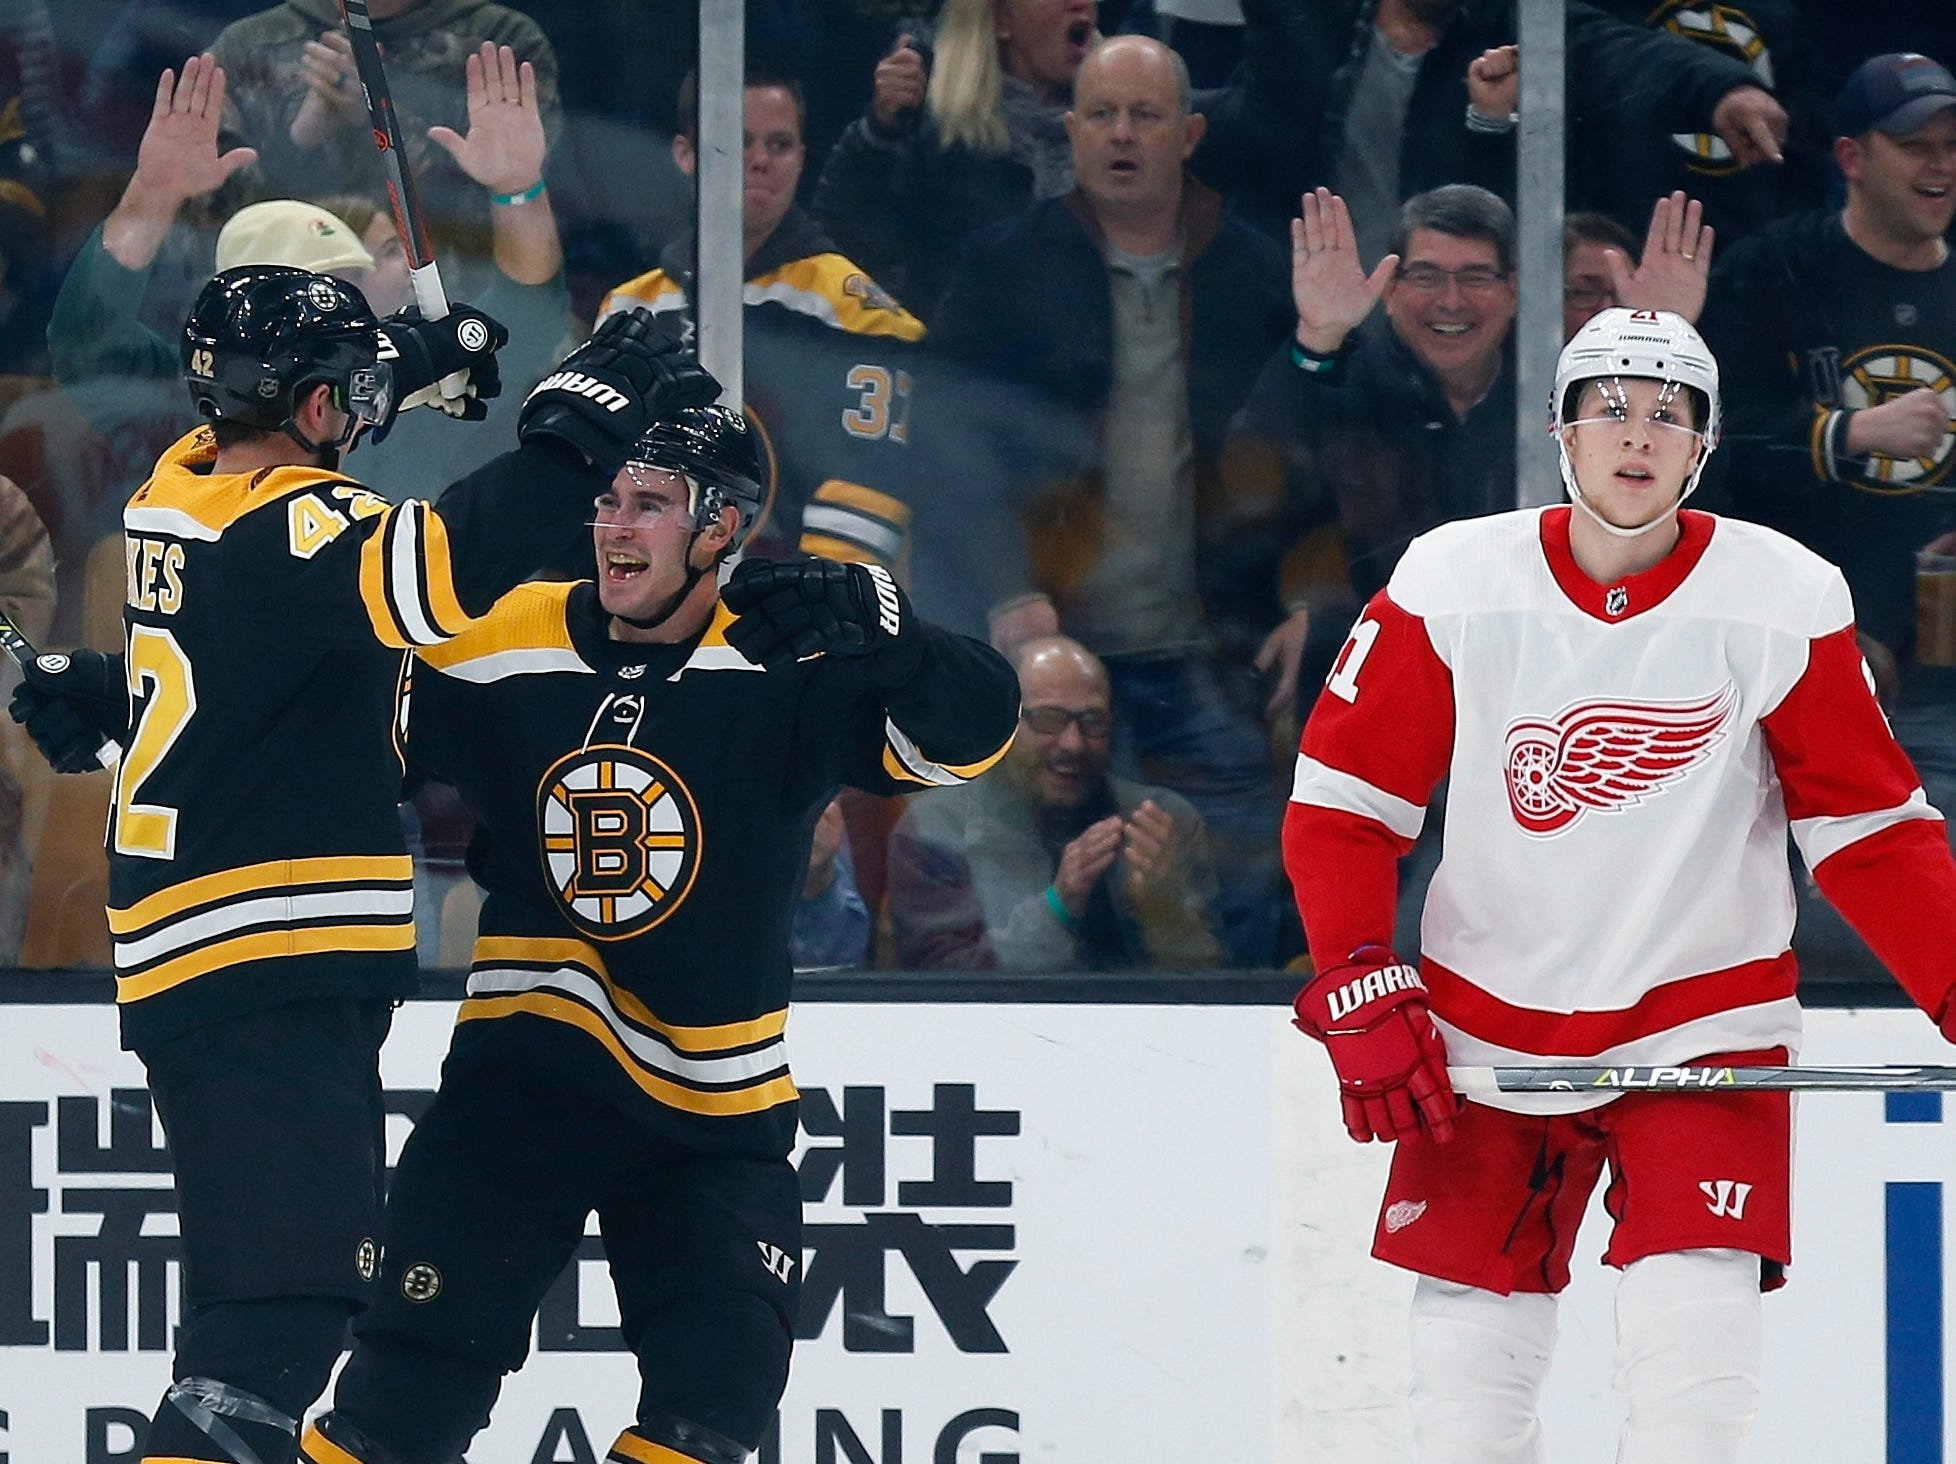 Boston Bruins' David Backes (42) celebrates his goal with teammate John Moore as Detroit Red Wings' Dennis Cholowski (21) skates away during the first period.